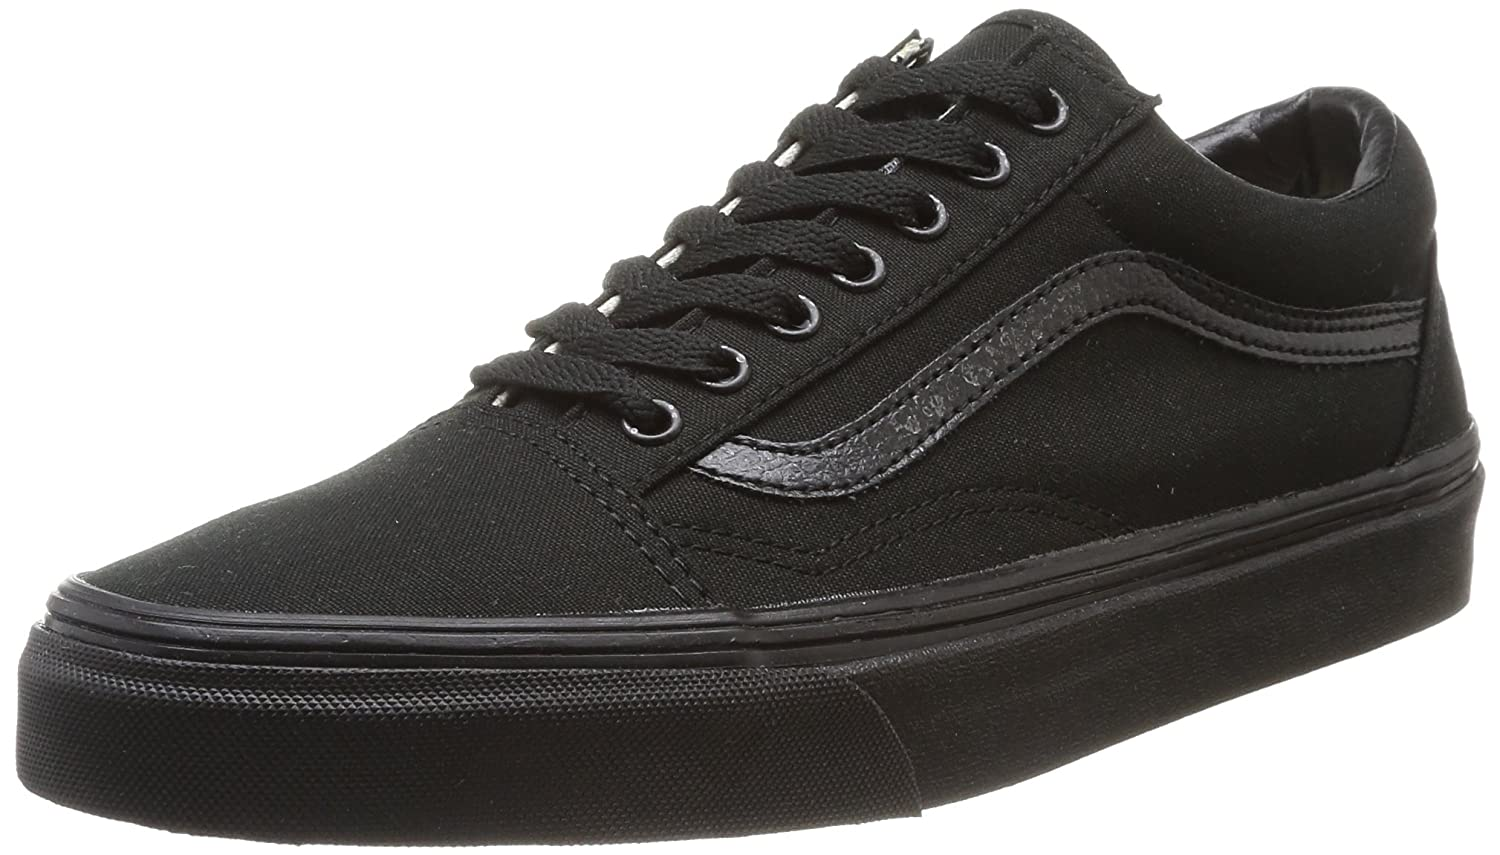 VANS Unisex Kids (C&L) Old Skool Skate Shoes, Comfortable and Durable in Sturdy Canvas and Leather Uppers B00YSUNJZQ 1 Little Kid M|(Enr) Blk/Blk